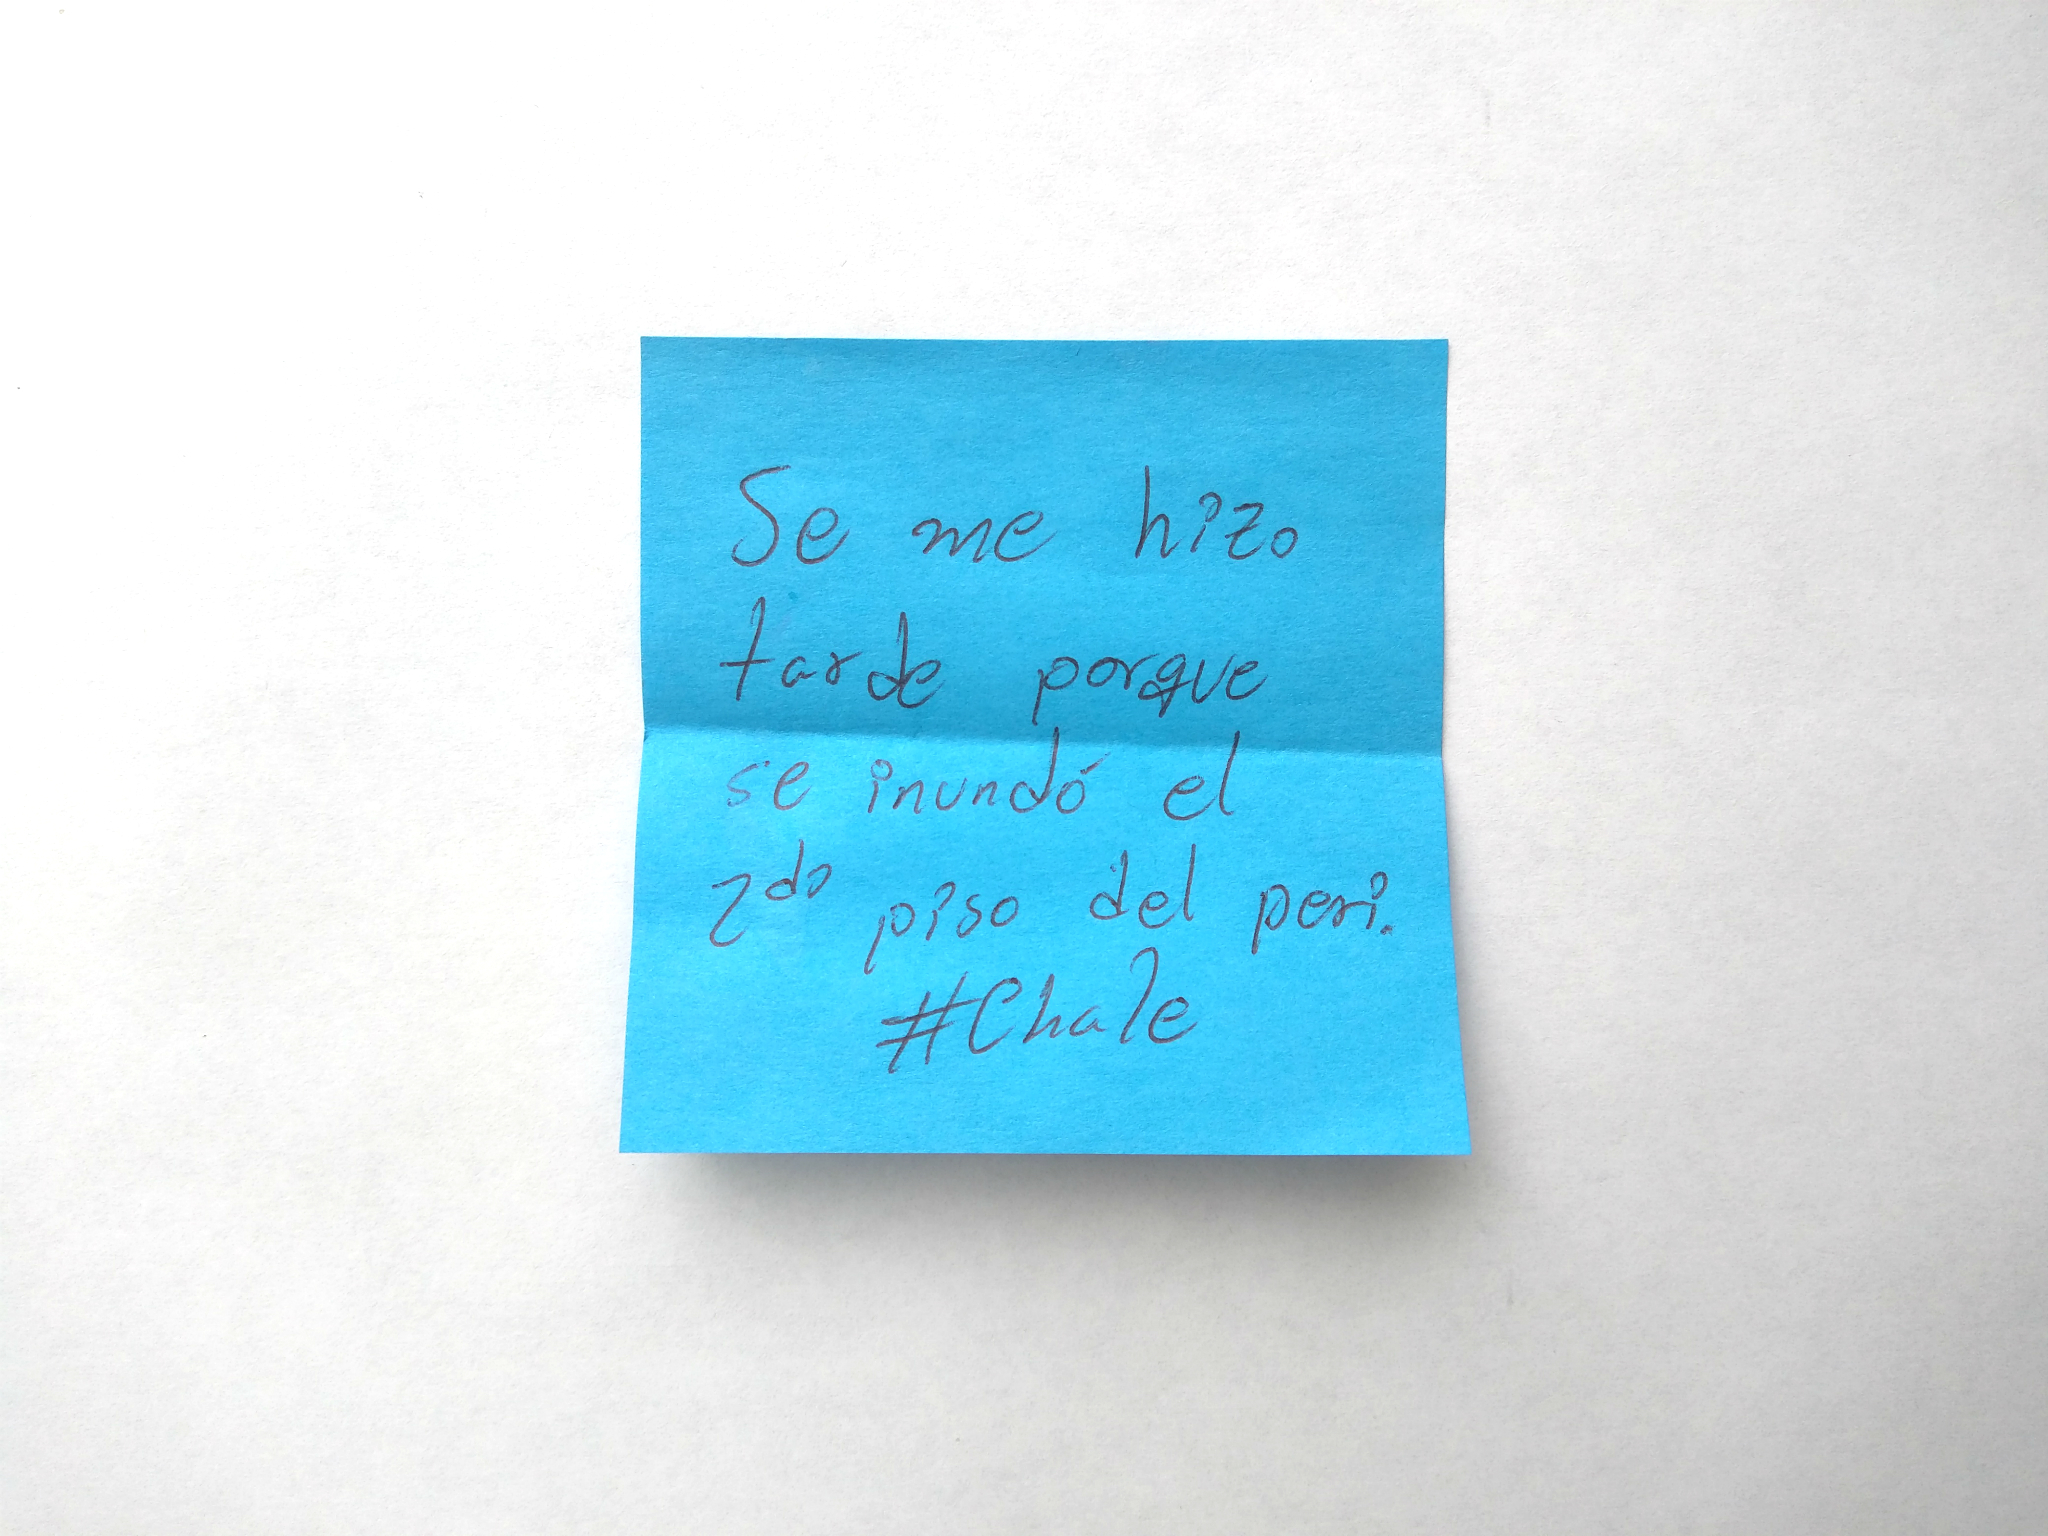 Confesiones de post-it Pretextos defeños